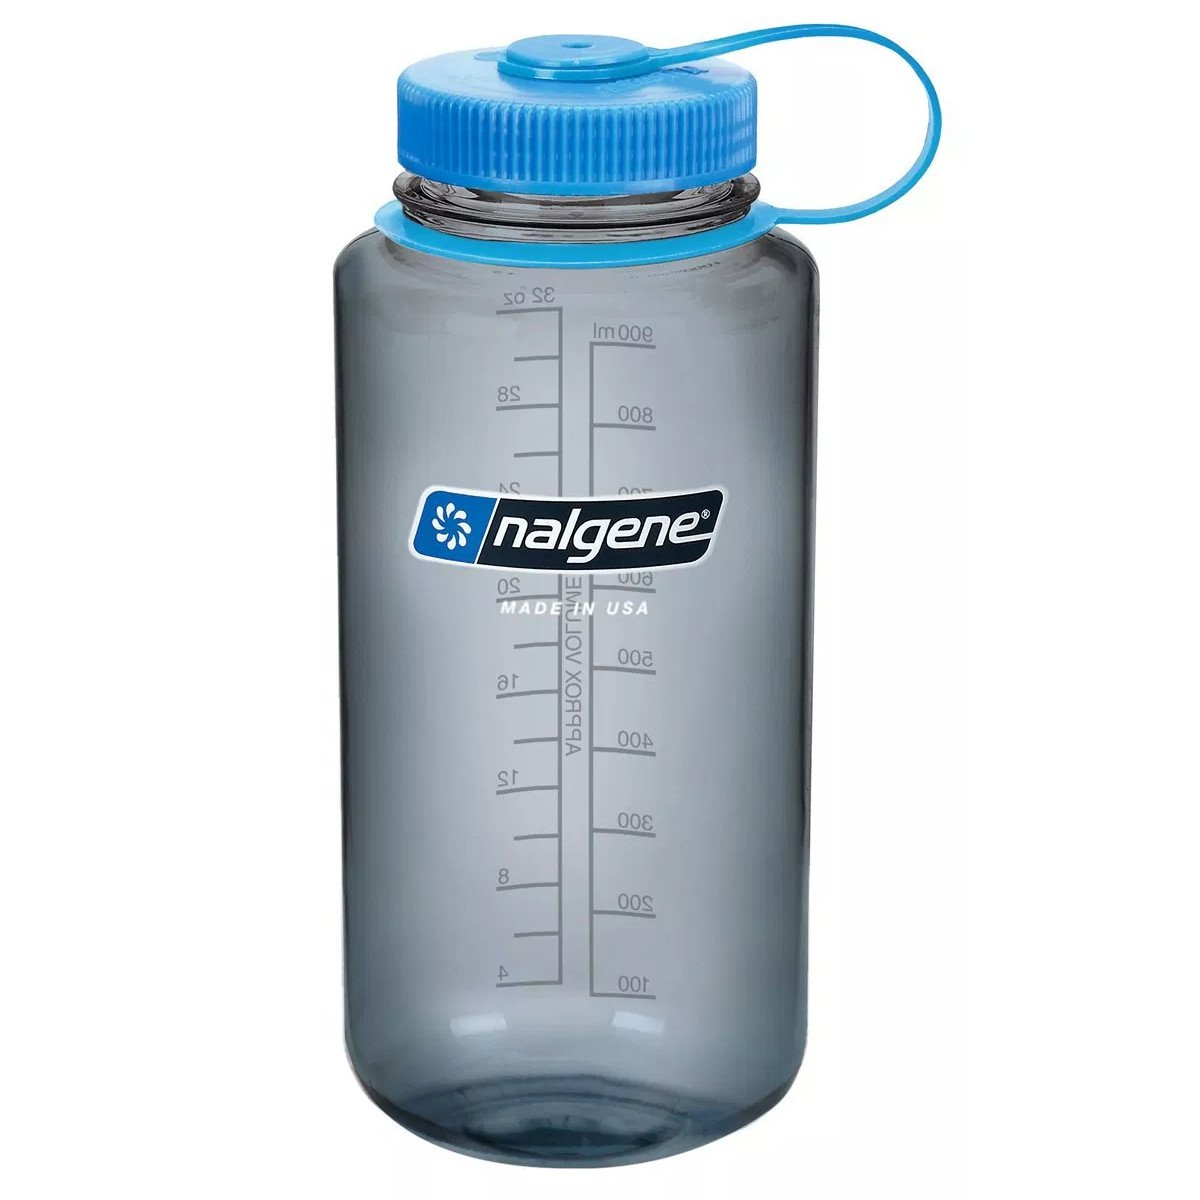 Nalgene Tritan Wide Mouth 1 Litre Bottle, with a clear bottle and blue lid